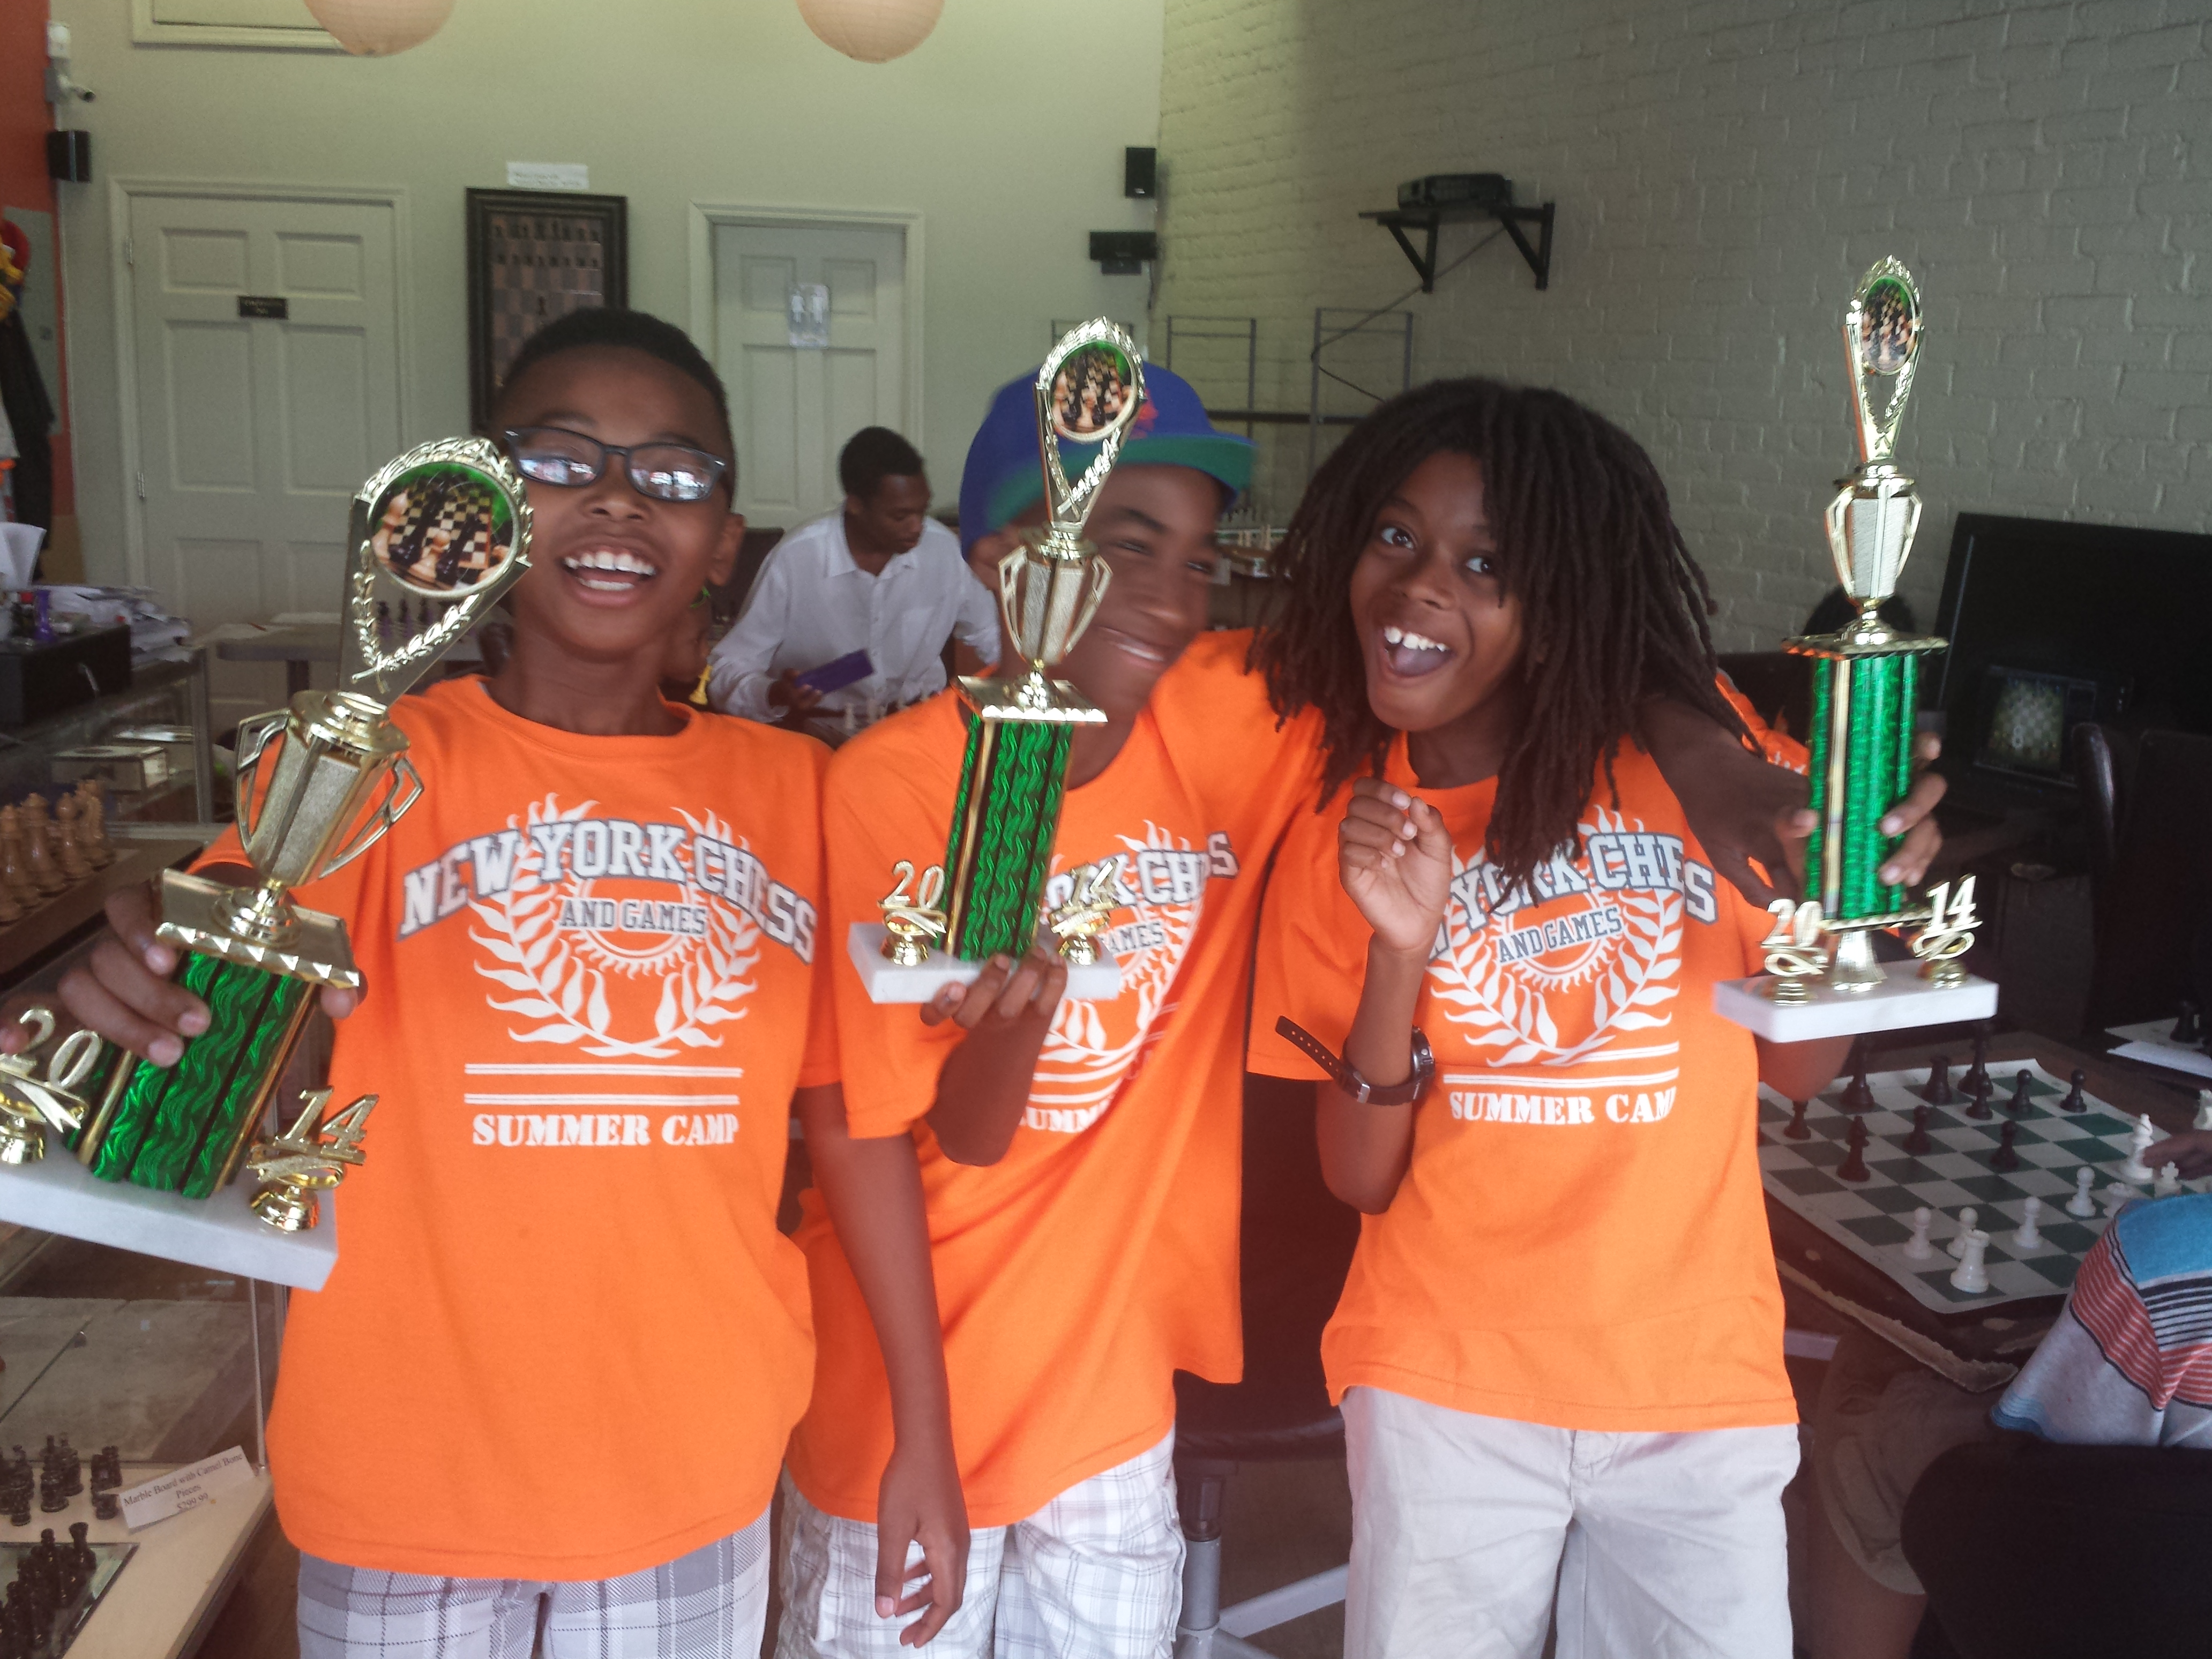 Tournaments and trophies